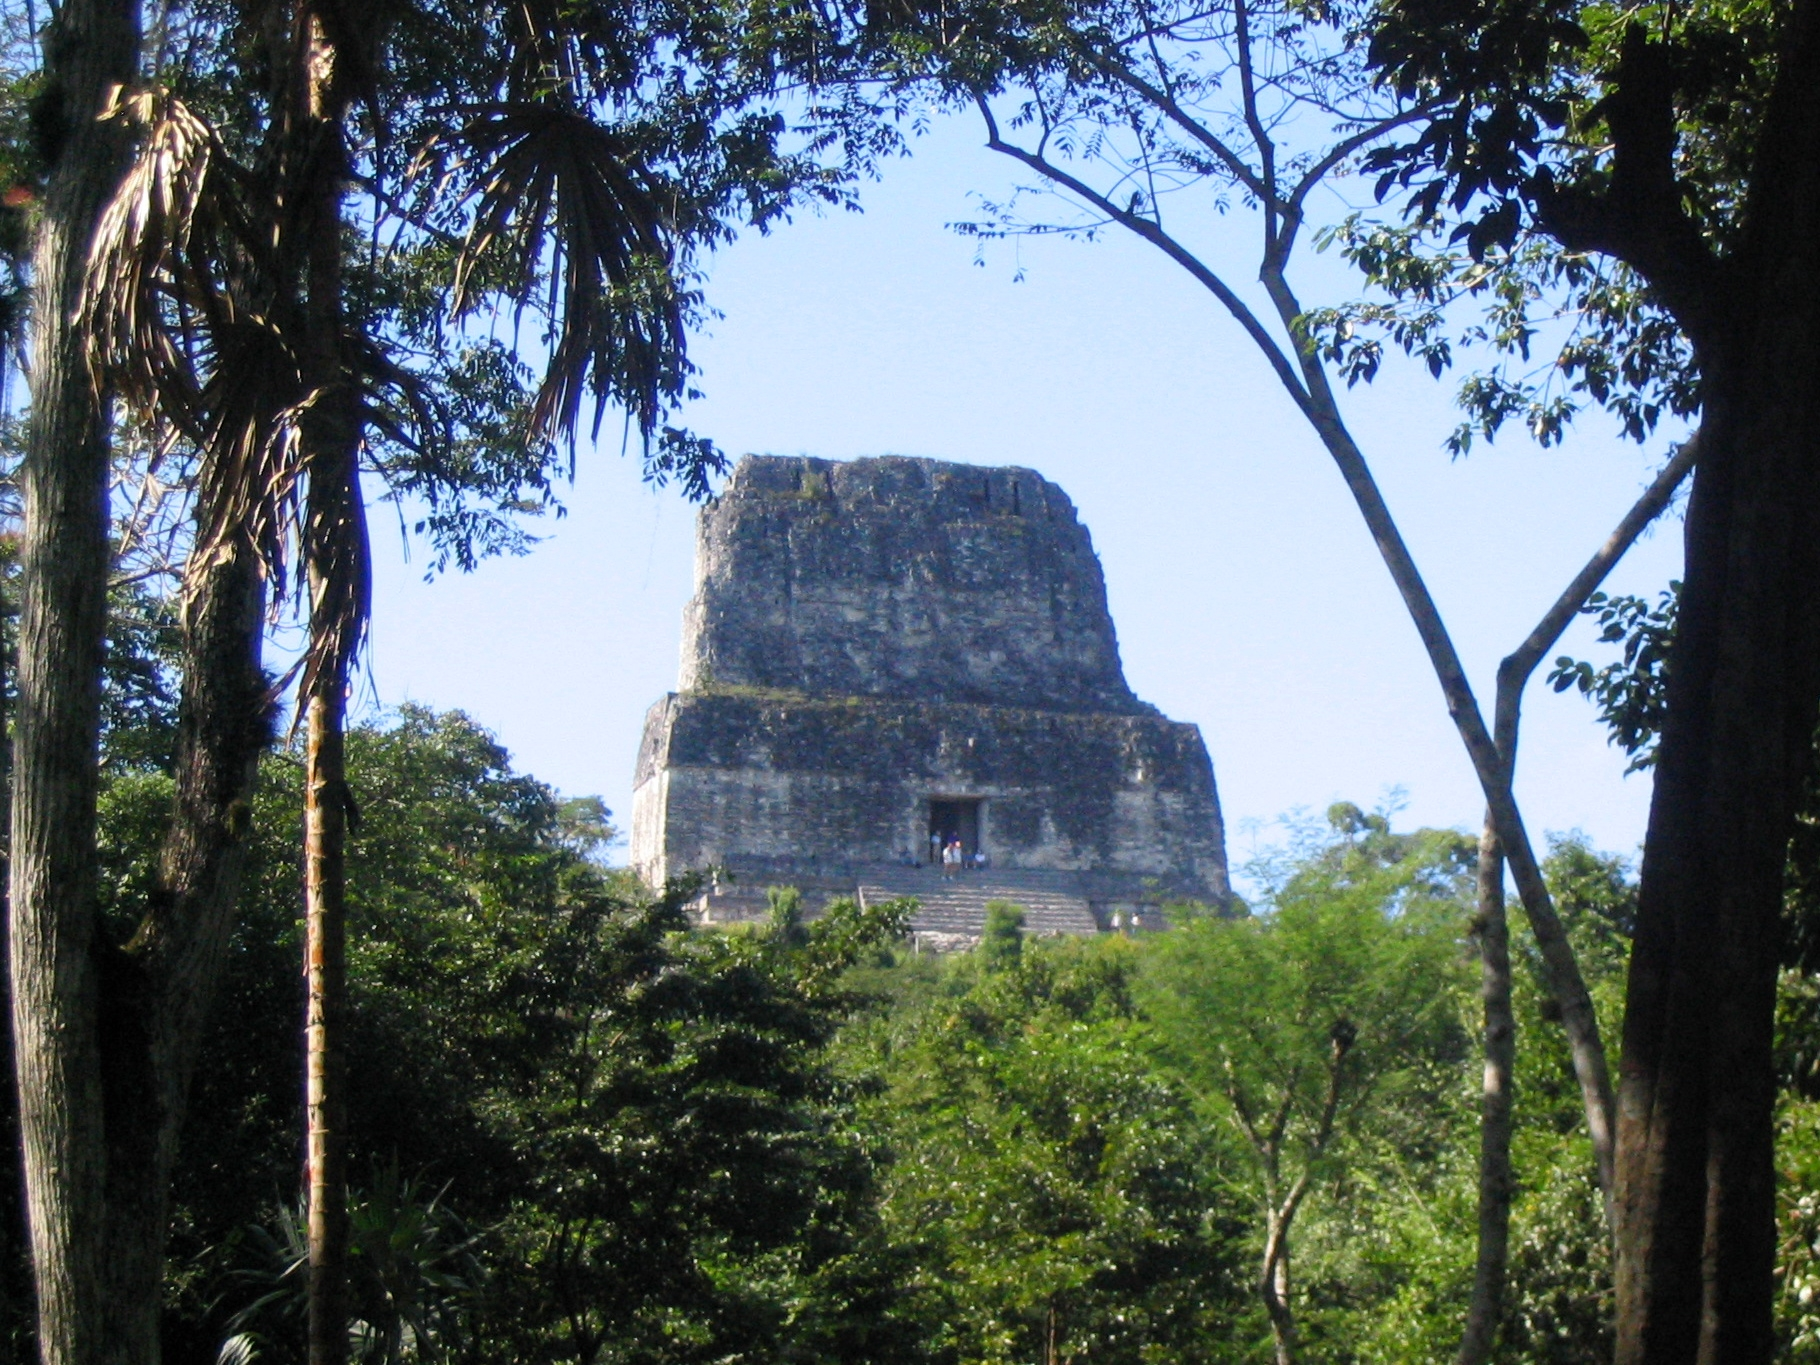 The top of Temple IV is just visible through the canopy as one looks up from below